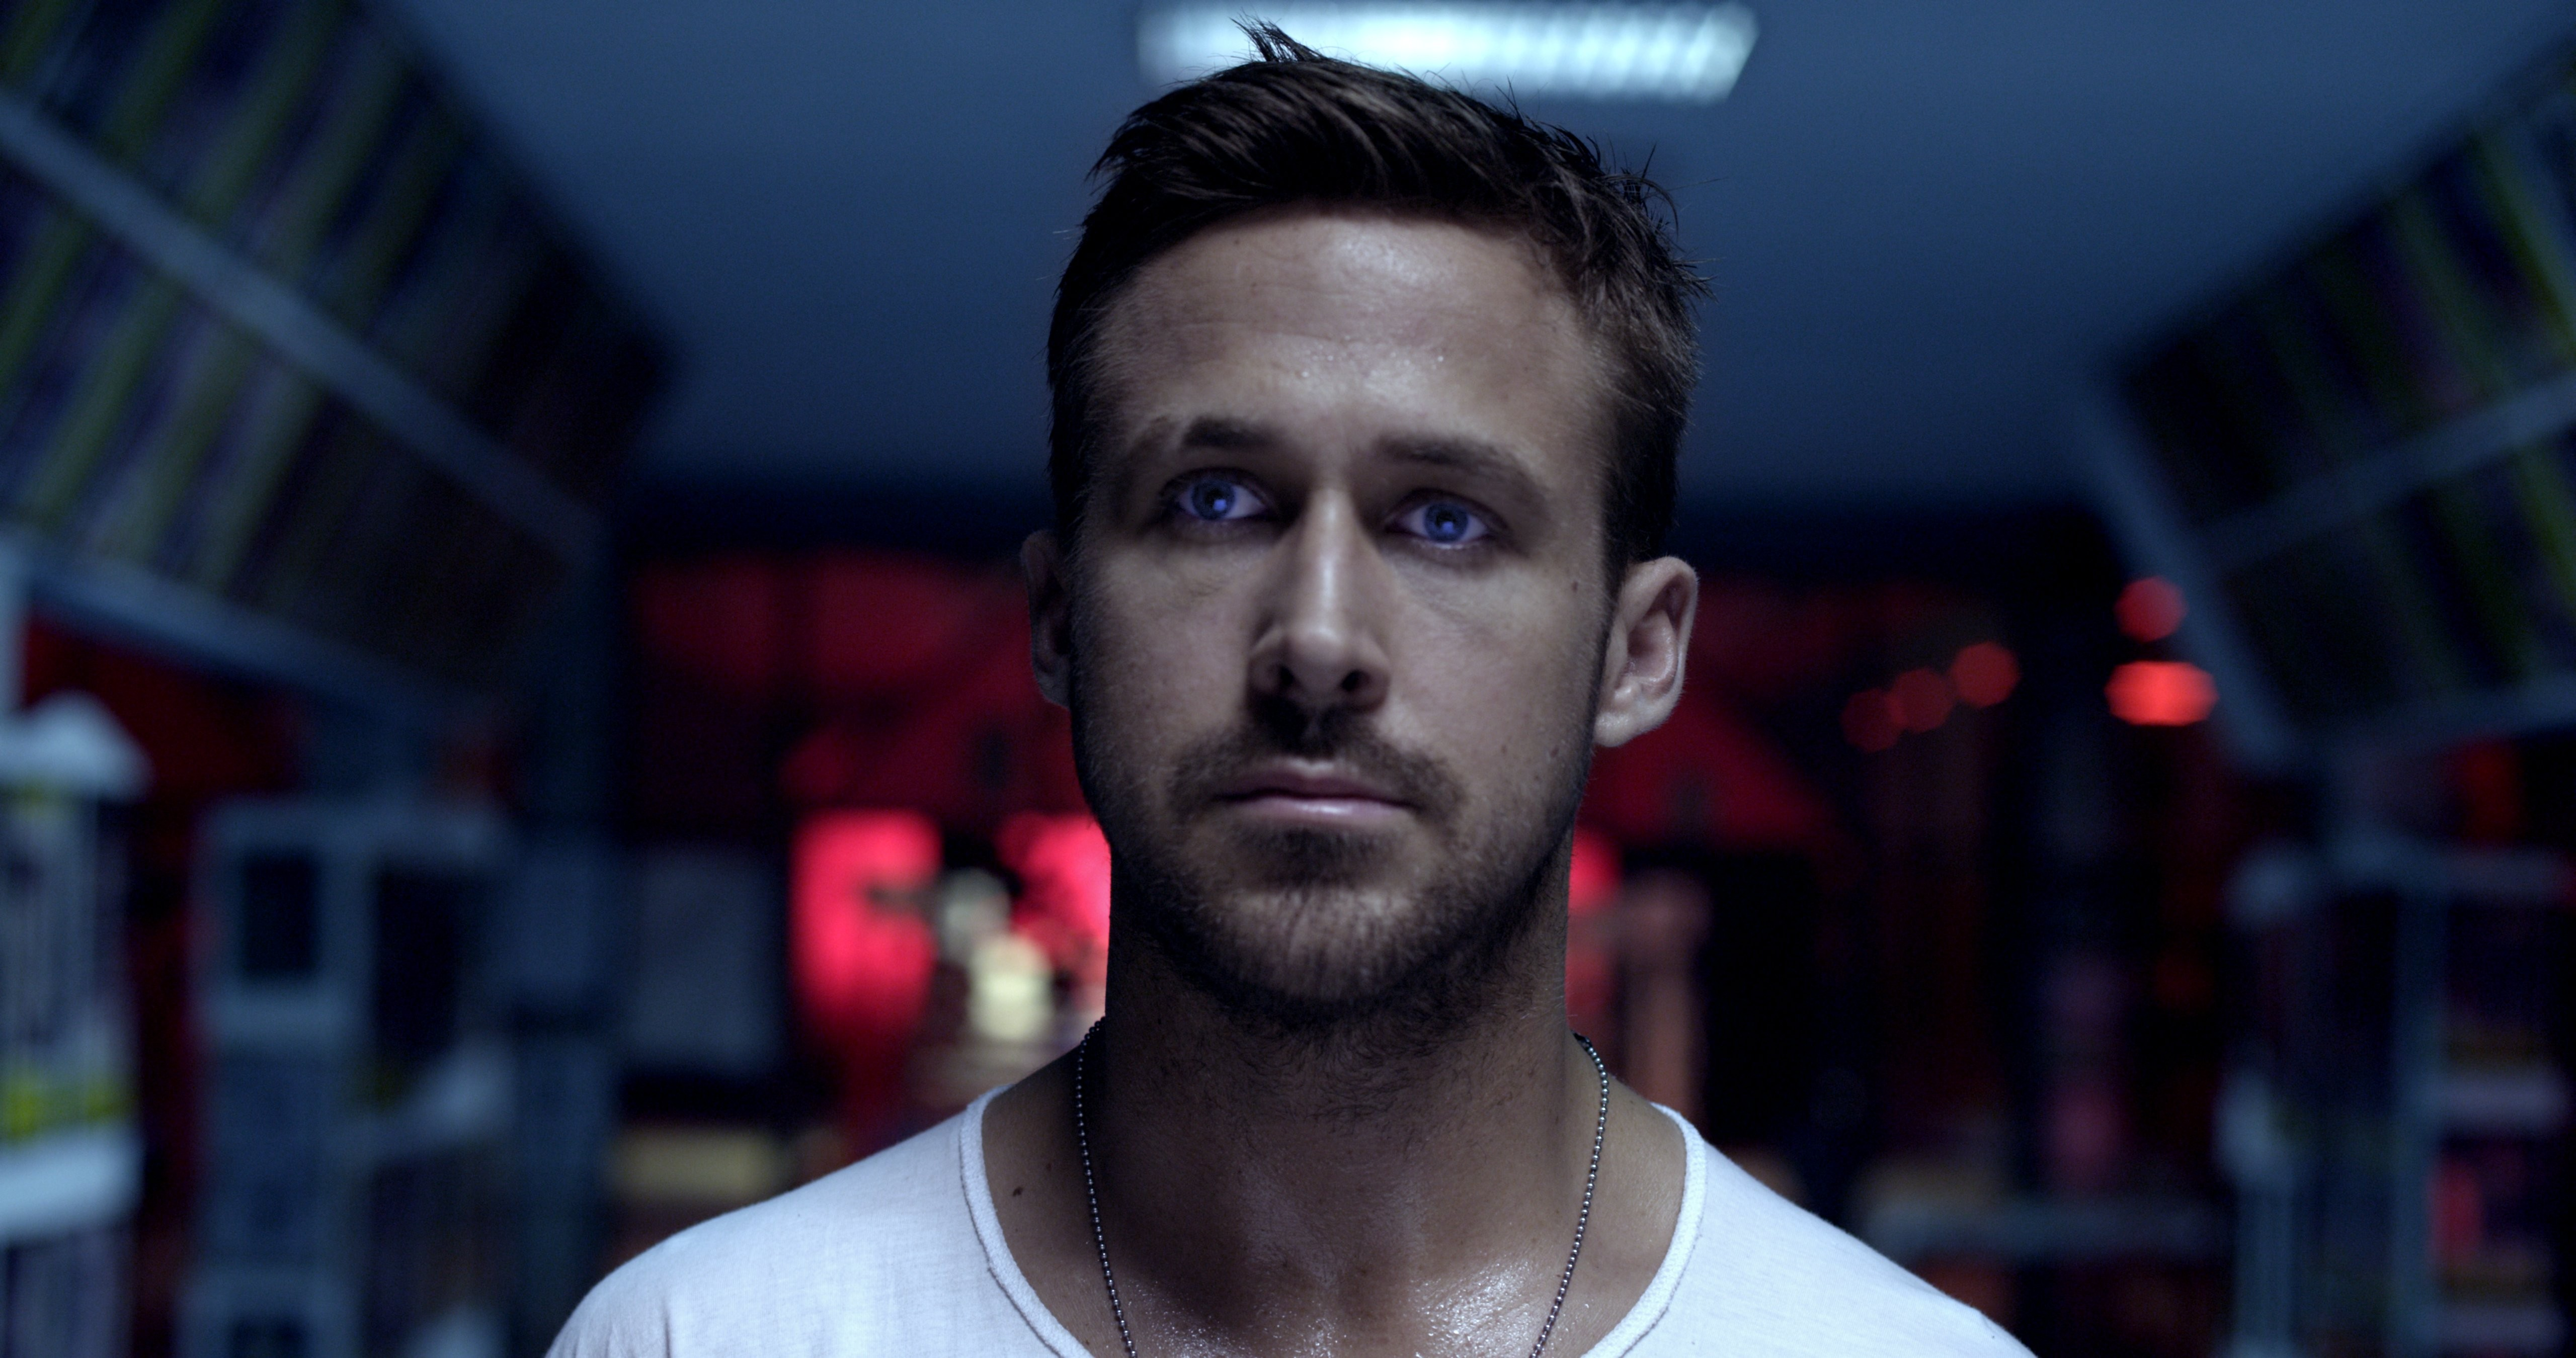 1920x1080 Ryan Gosling Laptop Full Hd 1080p Hd 4k Wallpapers Images